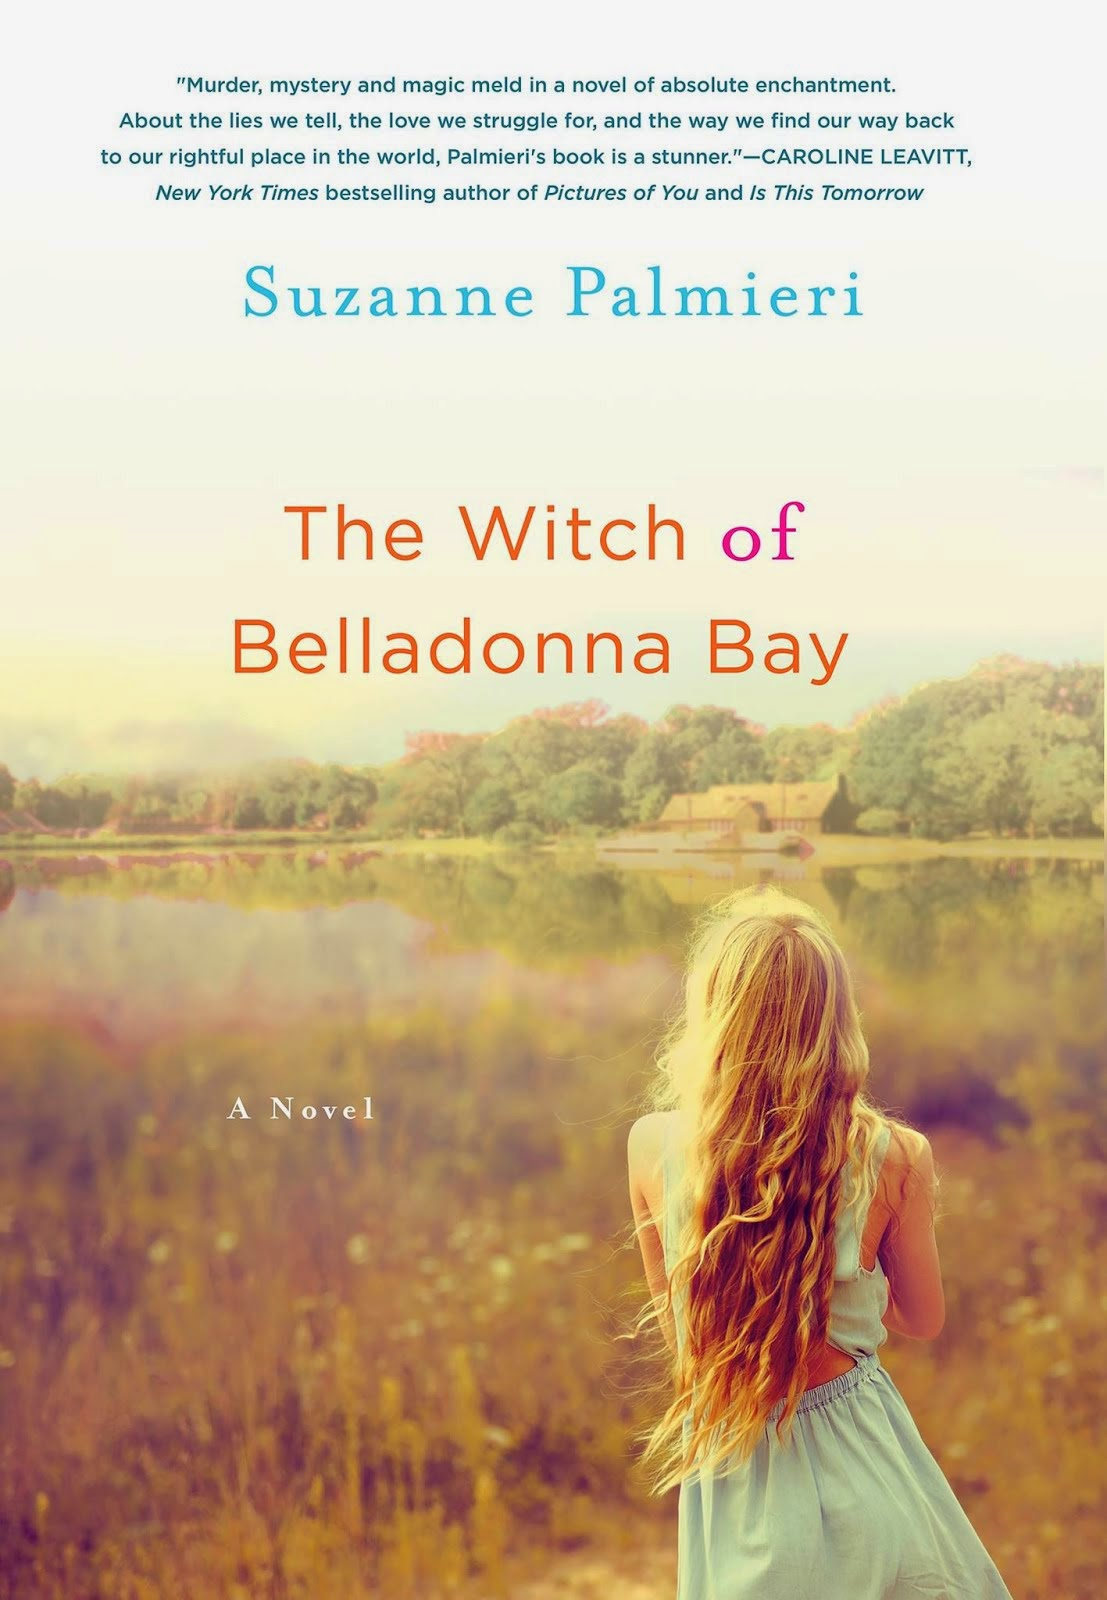 THE WITCH OF BELLADONNA BAY